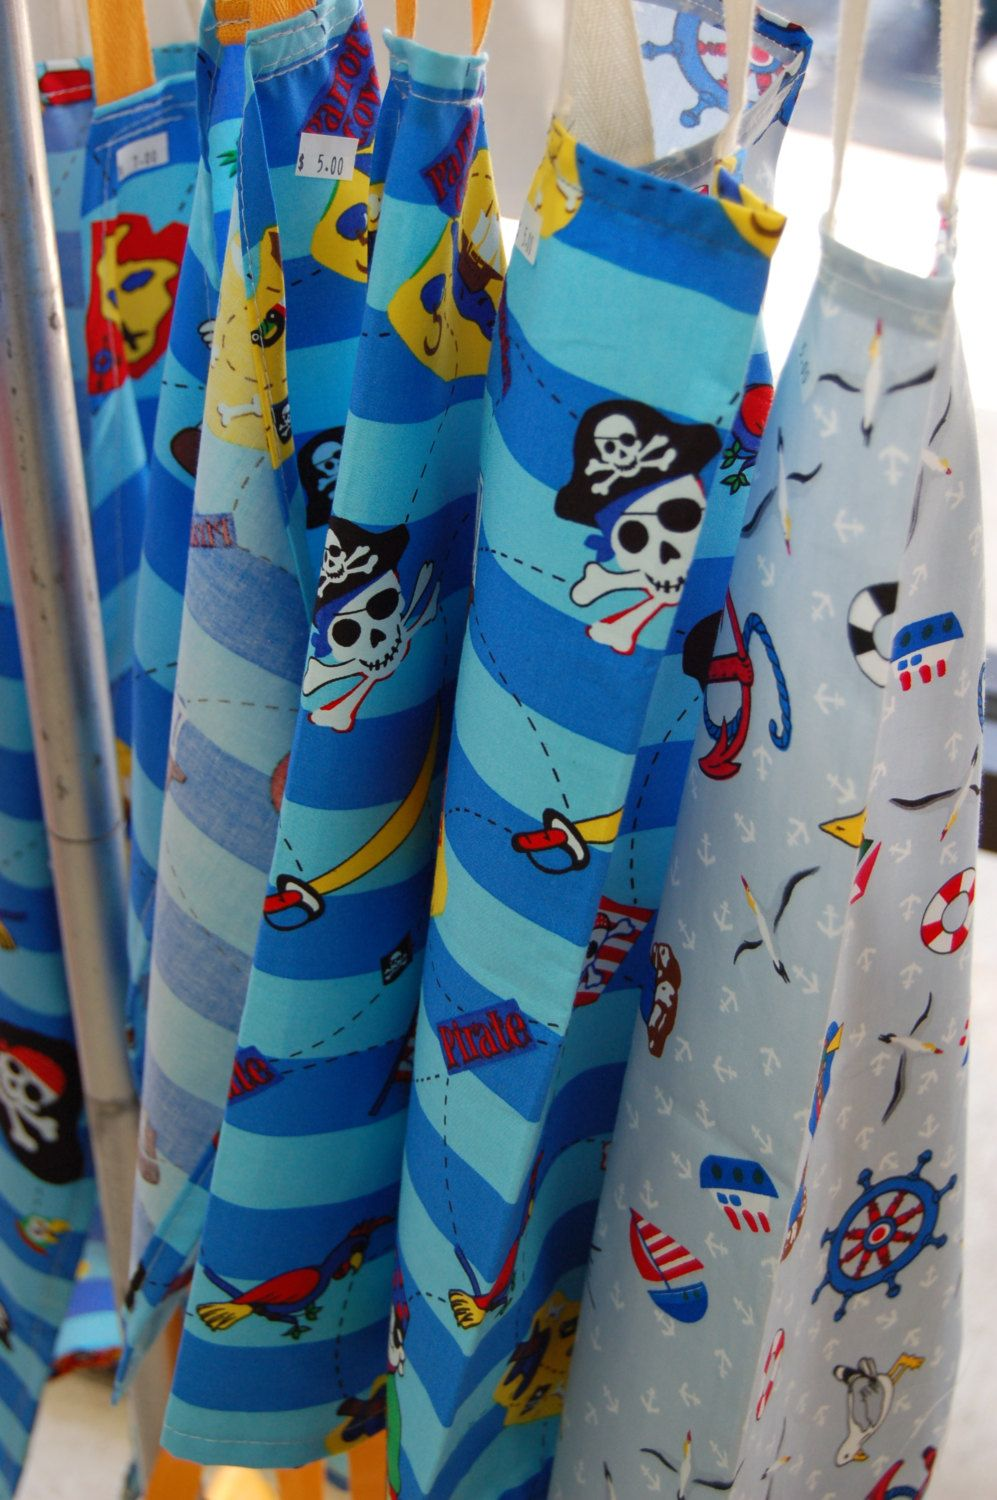 Kids Apron PIRATE DESIGN - Age 2-5 years Perfect Party Favor - Discounts for multiples - pinned by pin4etsy.com